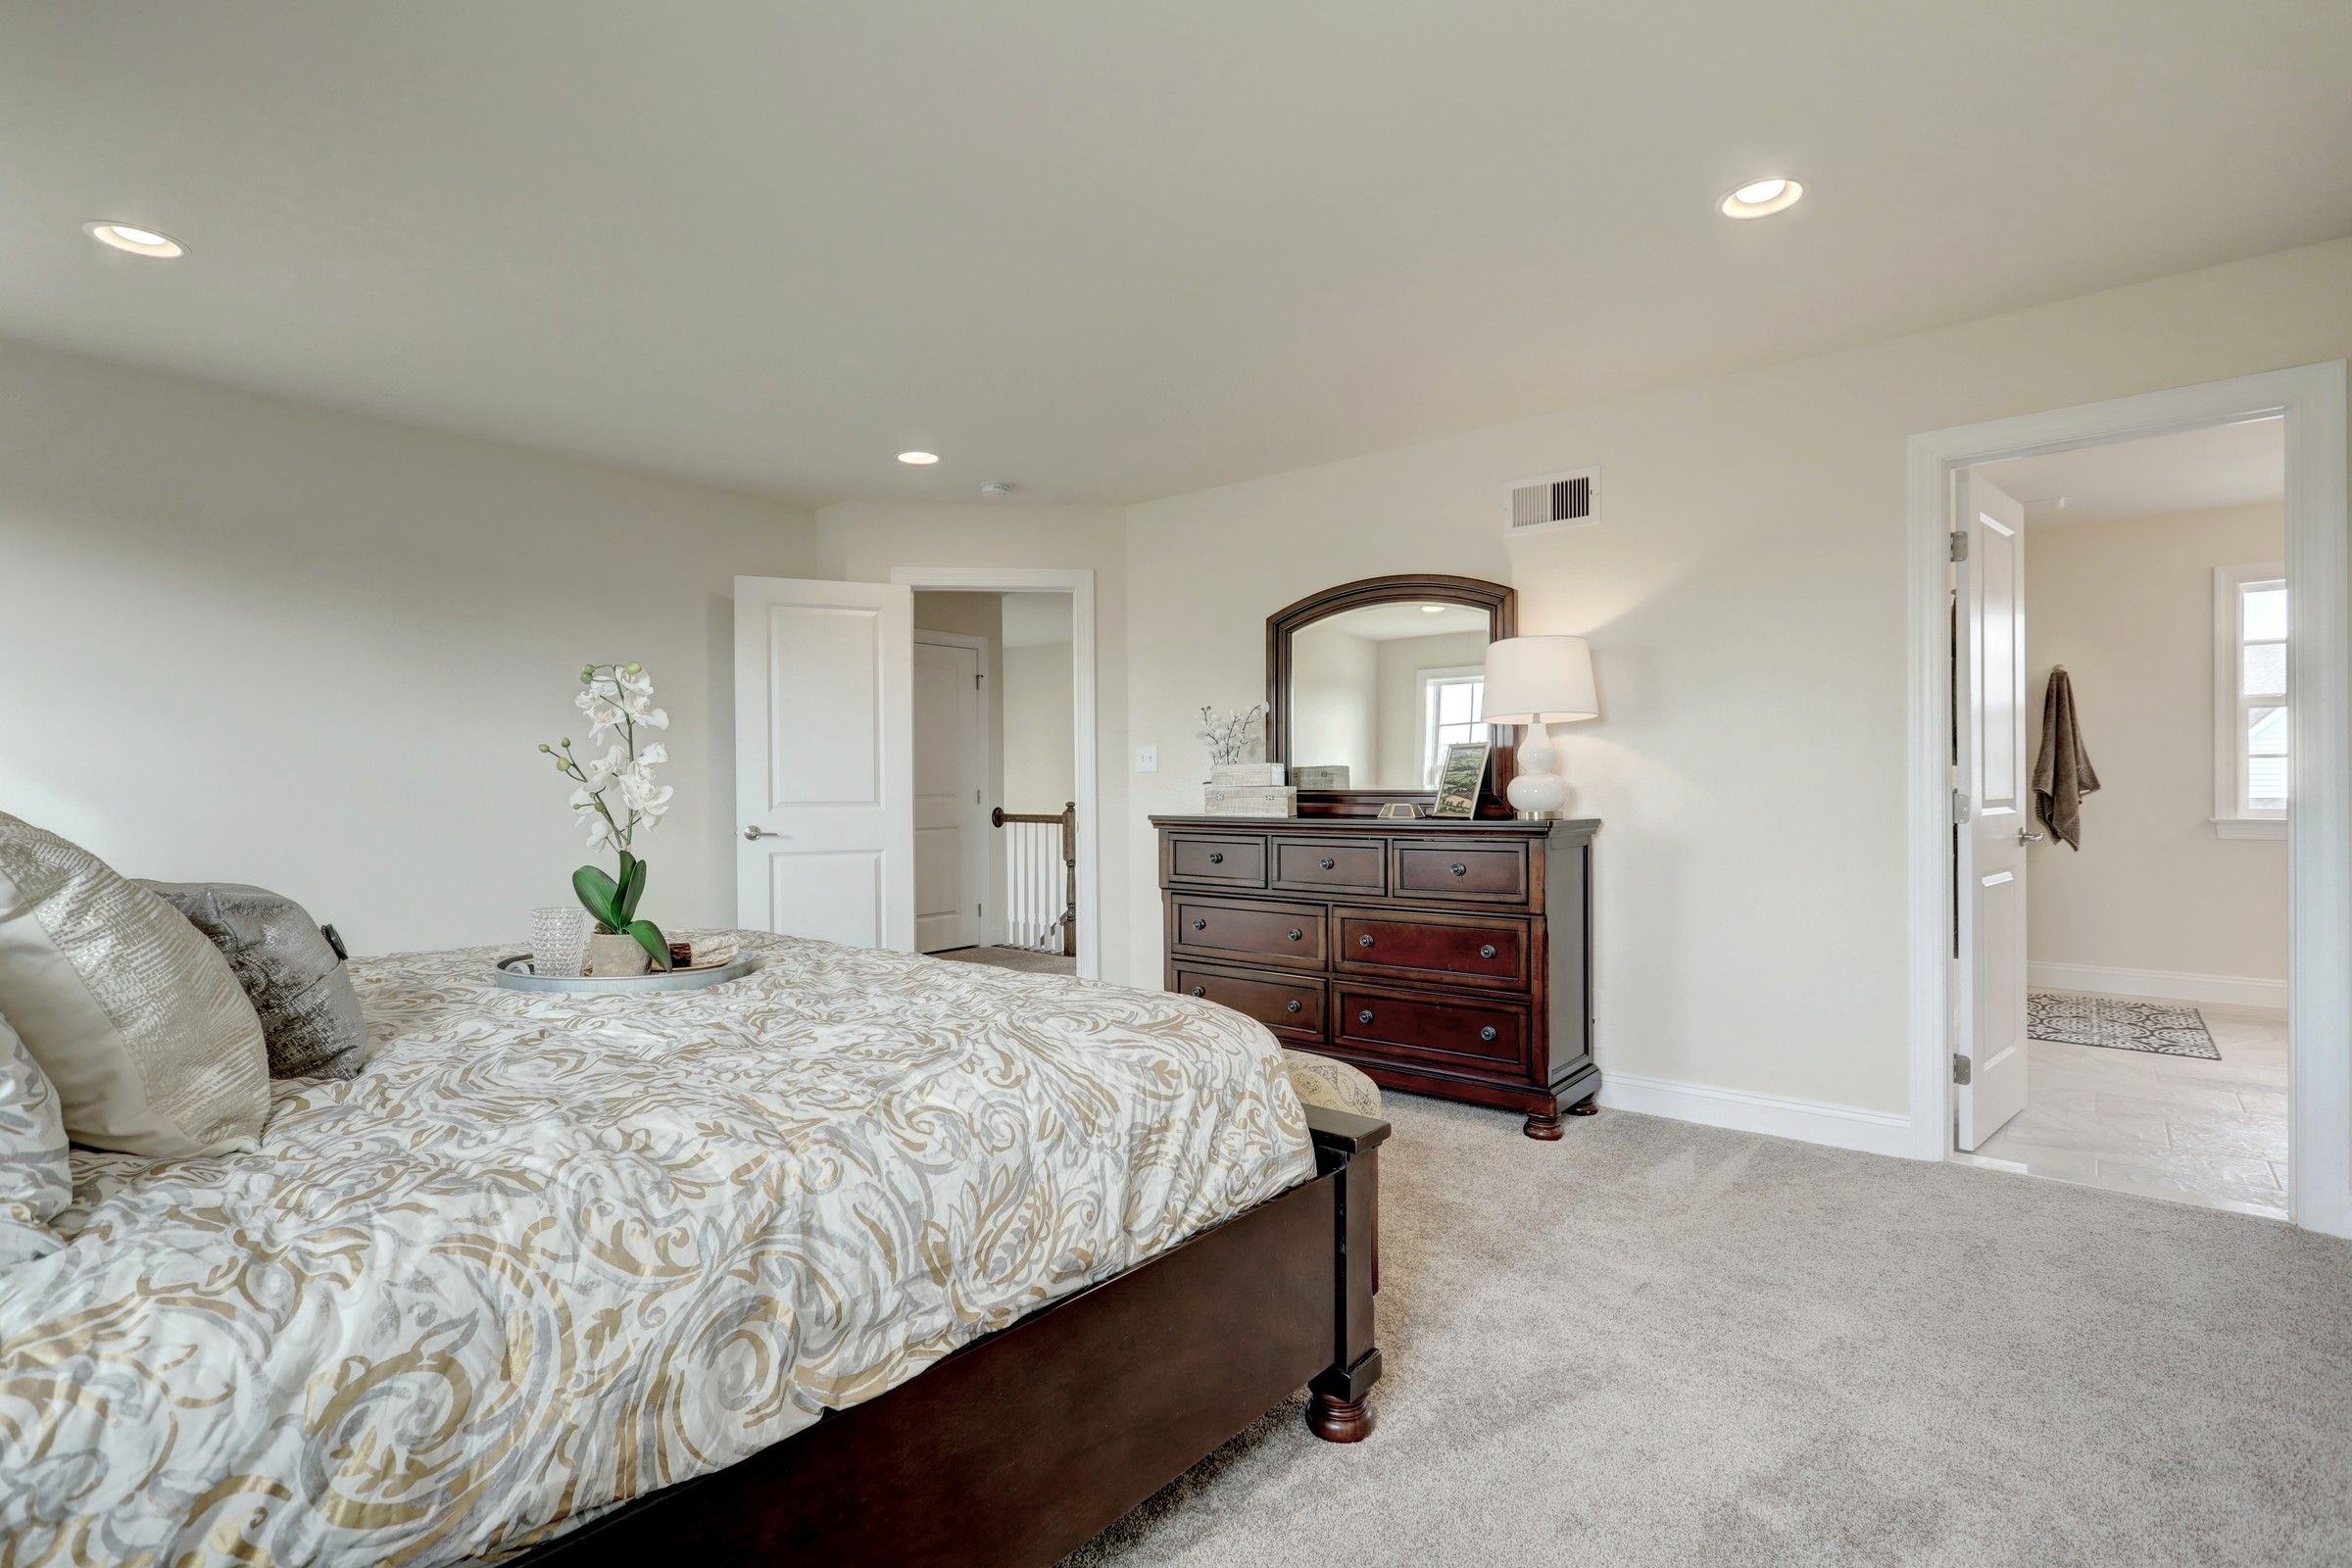 Bedroom featured in the Addison Farmhouse By Keystone Custom Homes in Philadelphia, PA